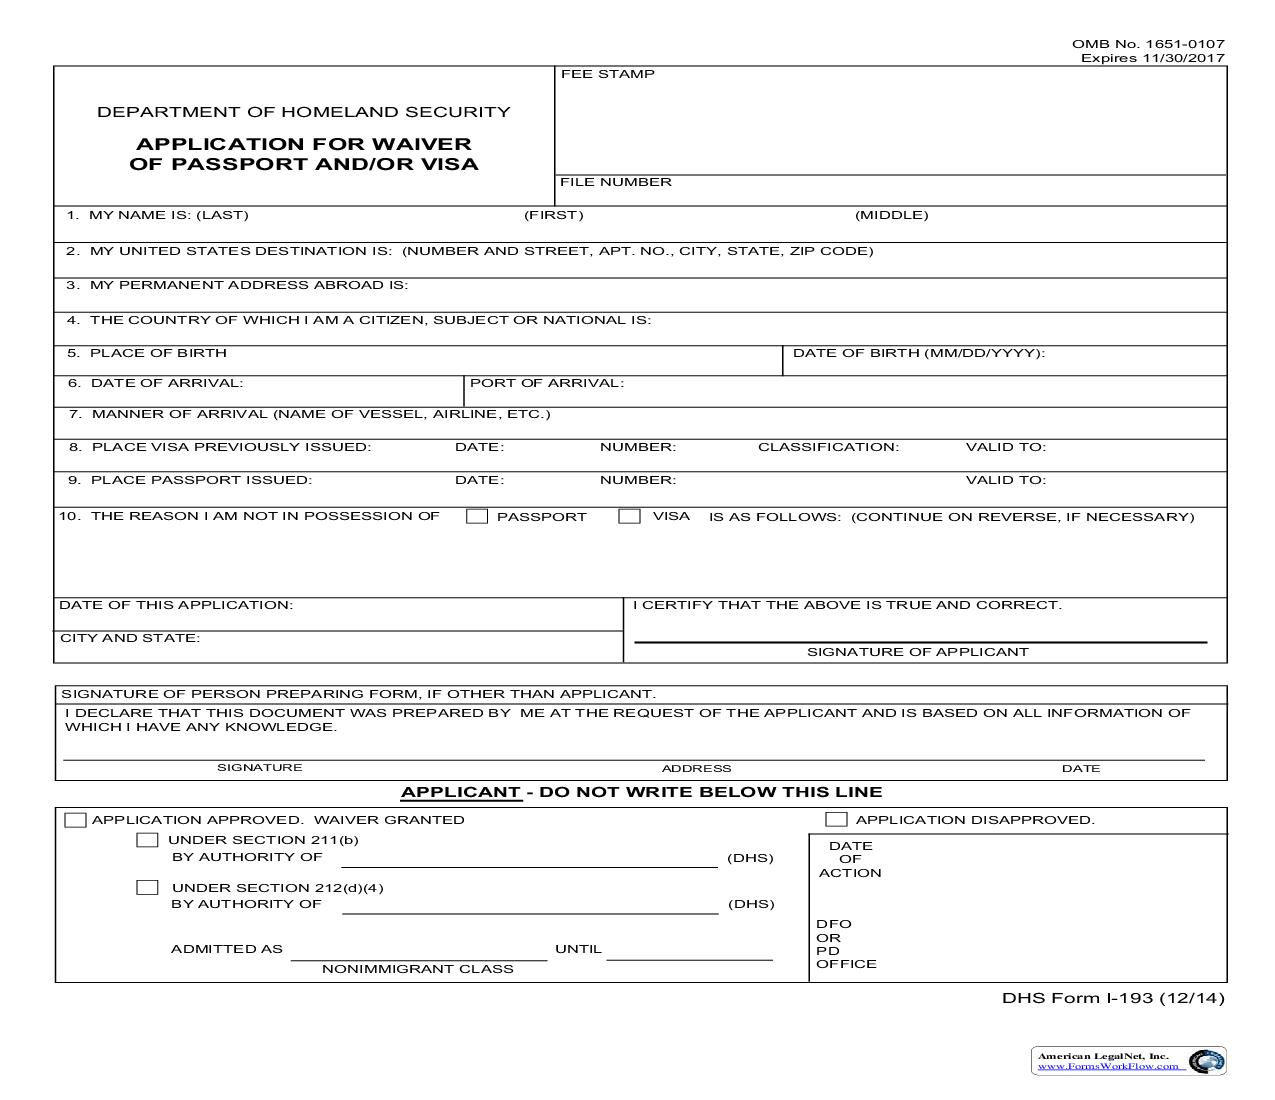 Application For Waiver Of Passport And Or Visa {I-193} | Pdf Fpdf Doc Docx | Official Federal Forms